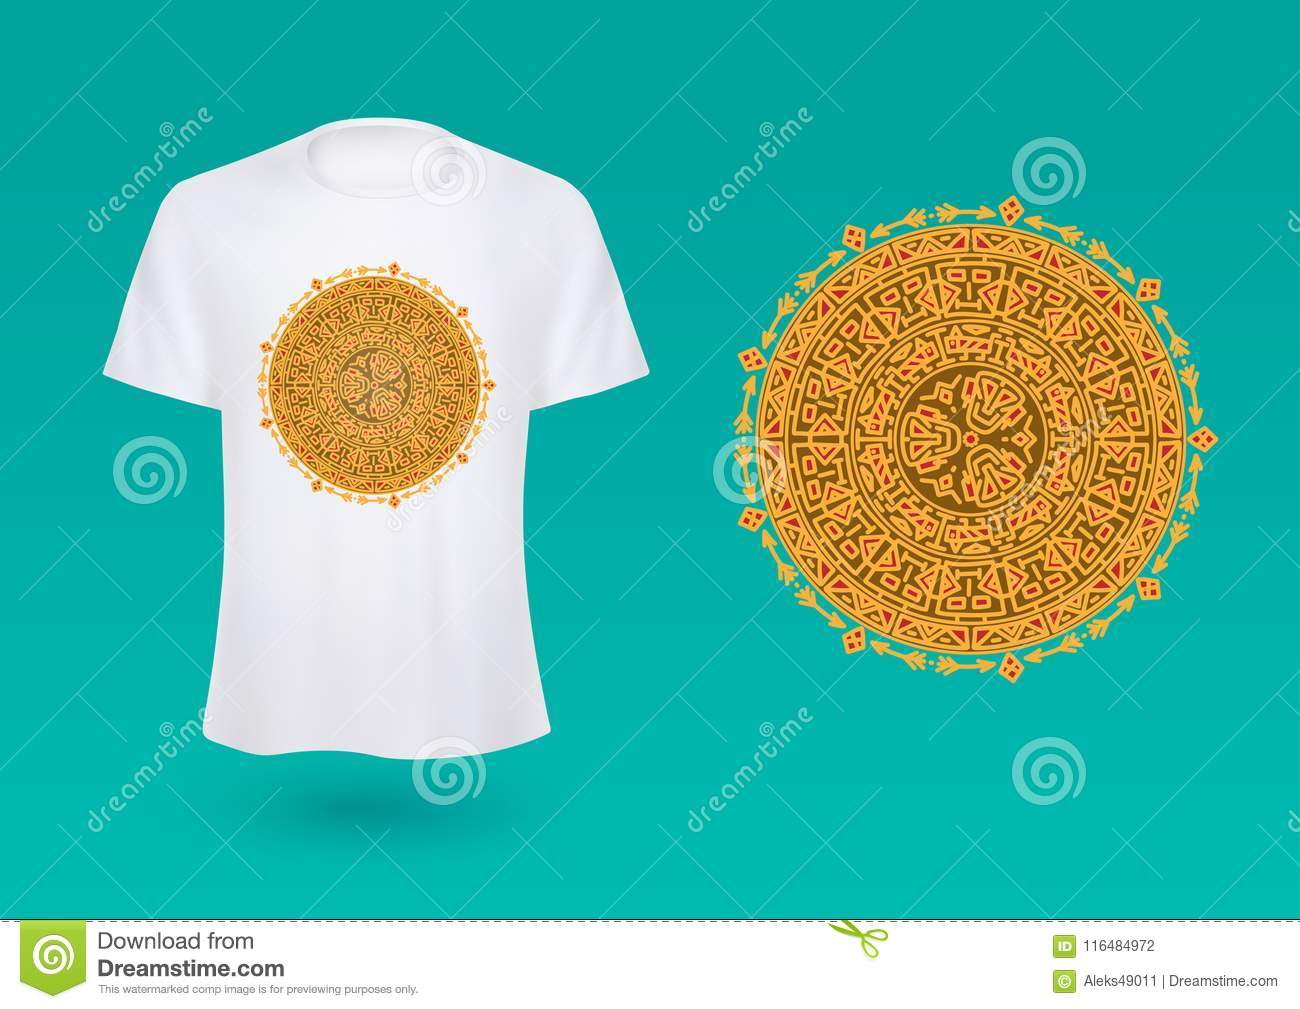 Shirt with emblem mocap illustration vector